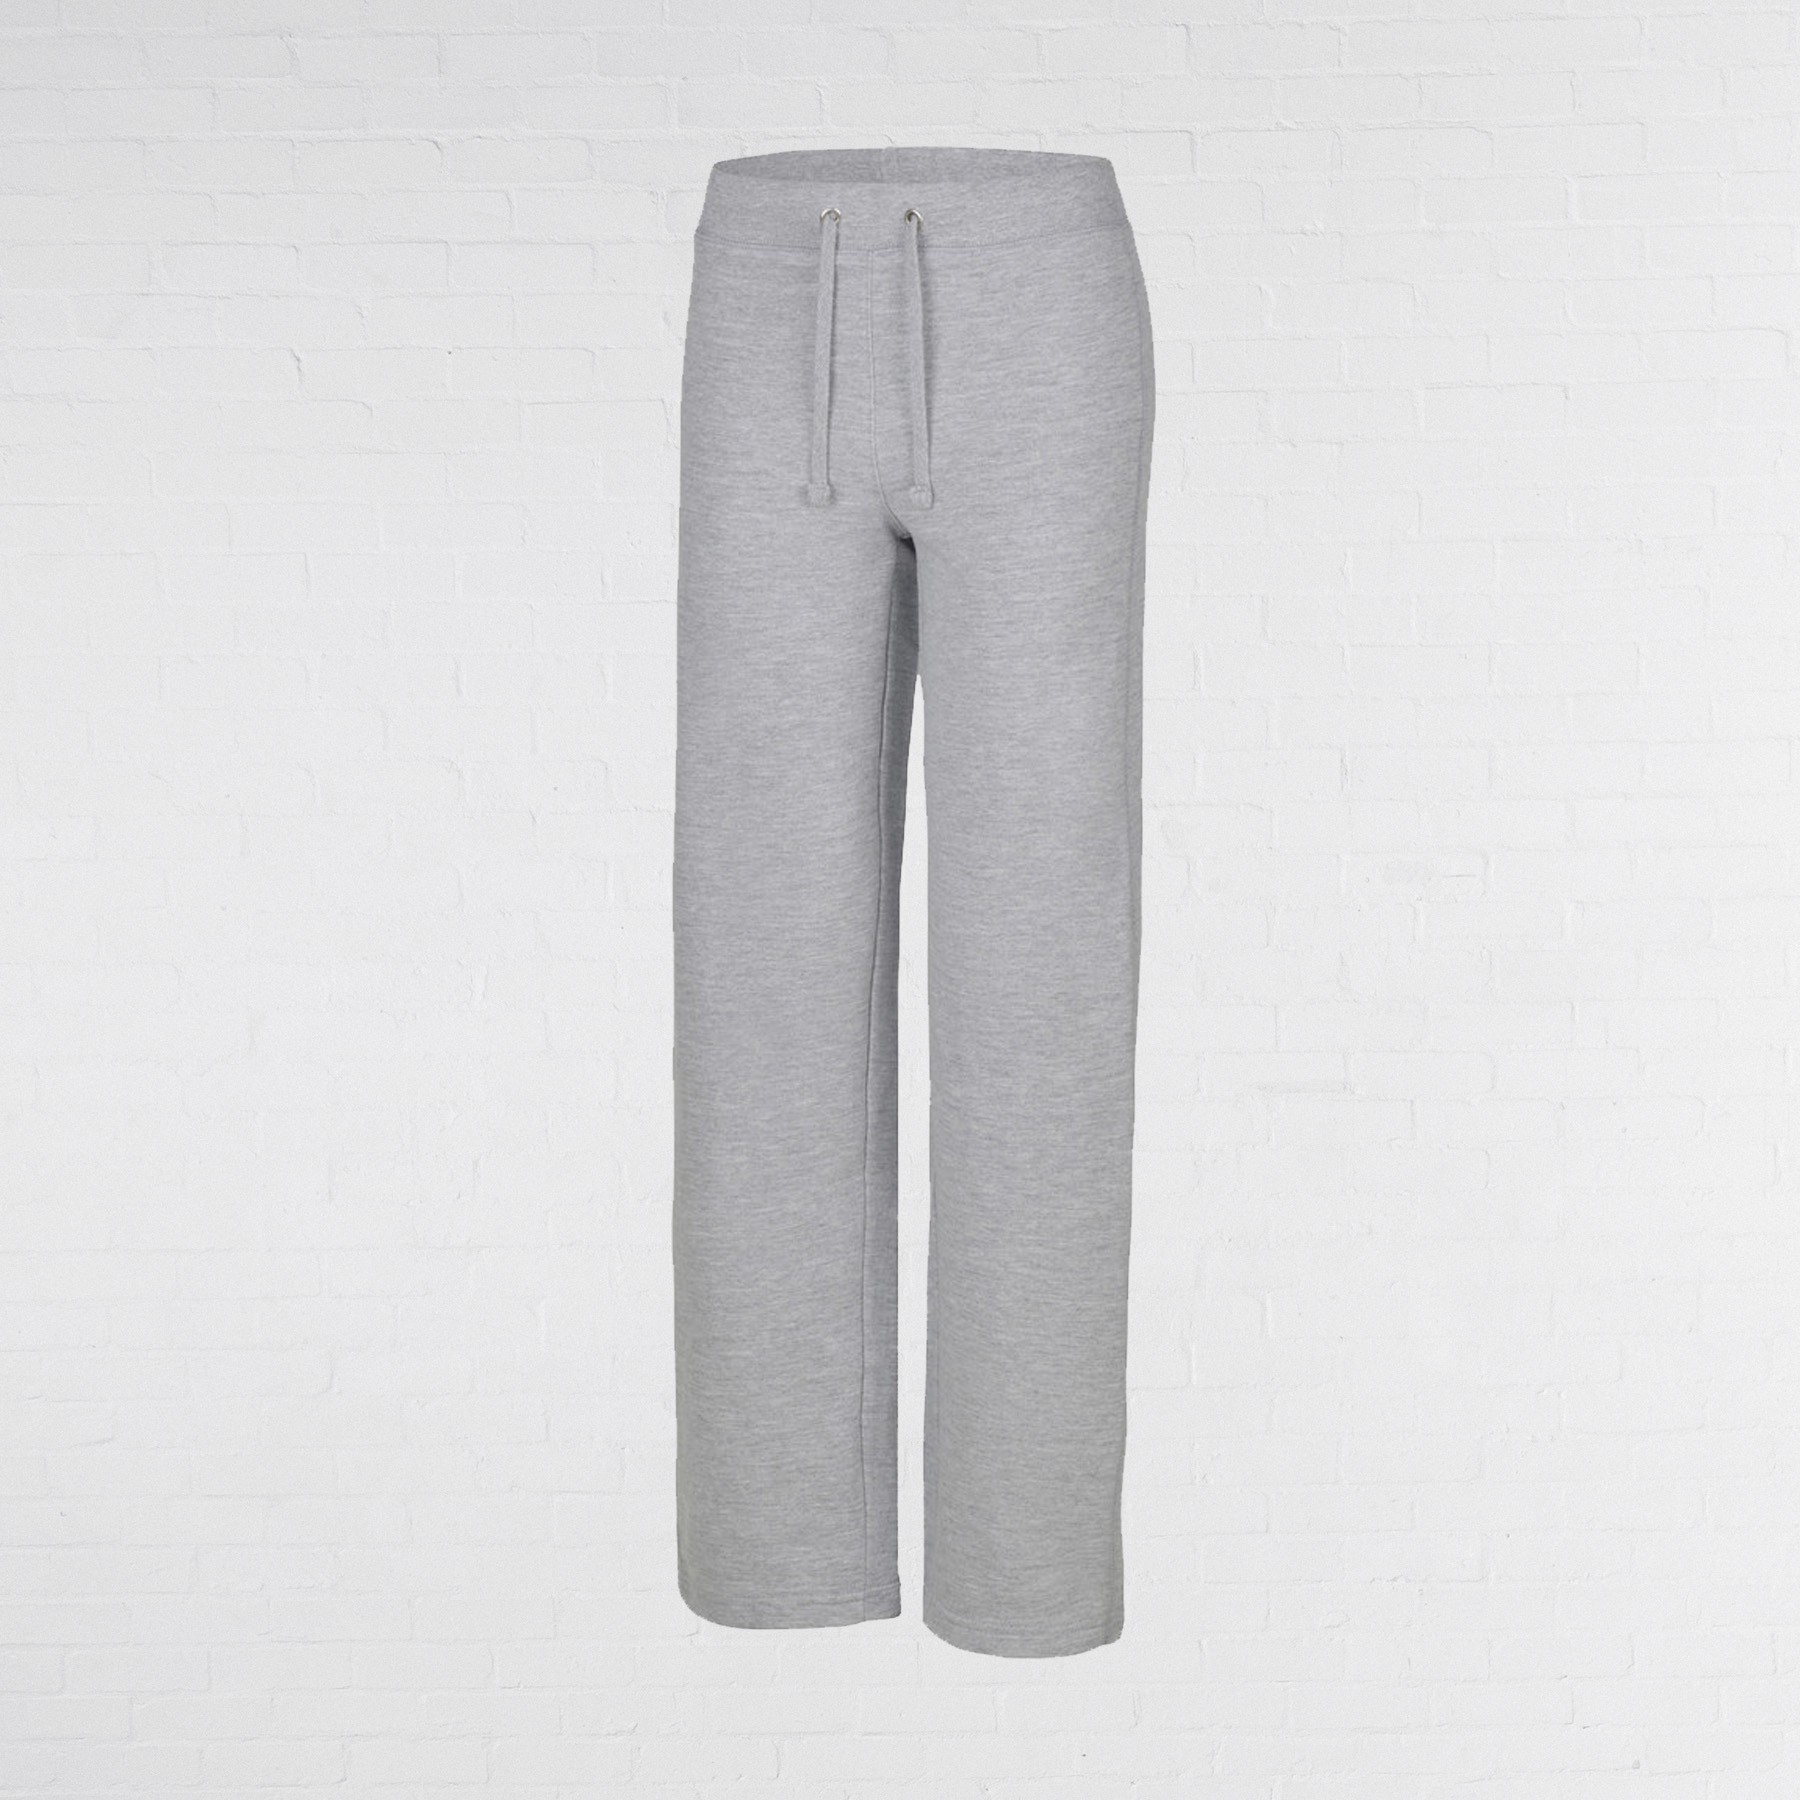 Ladies Fit Jog Pants (Grey)